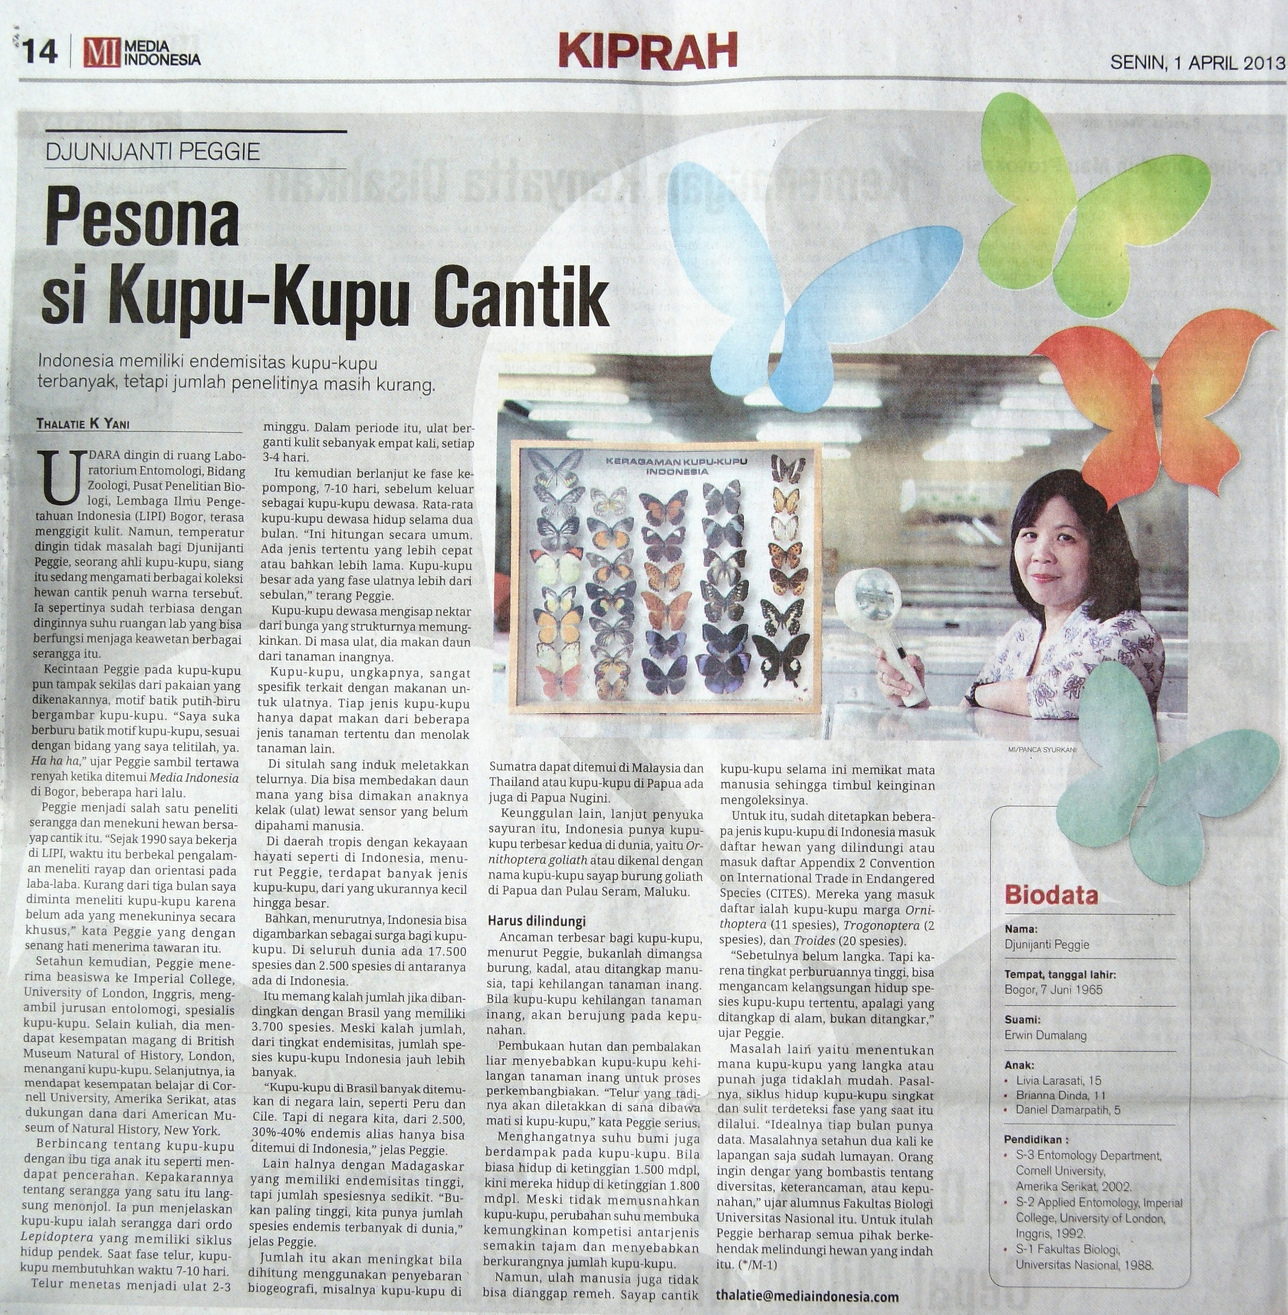 Artikel Media Indonesia - Senin, 1 April 2013, Kolom Kiprah